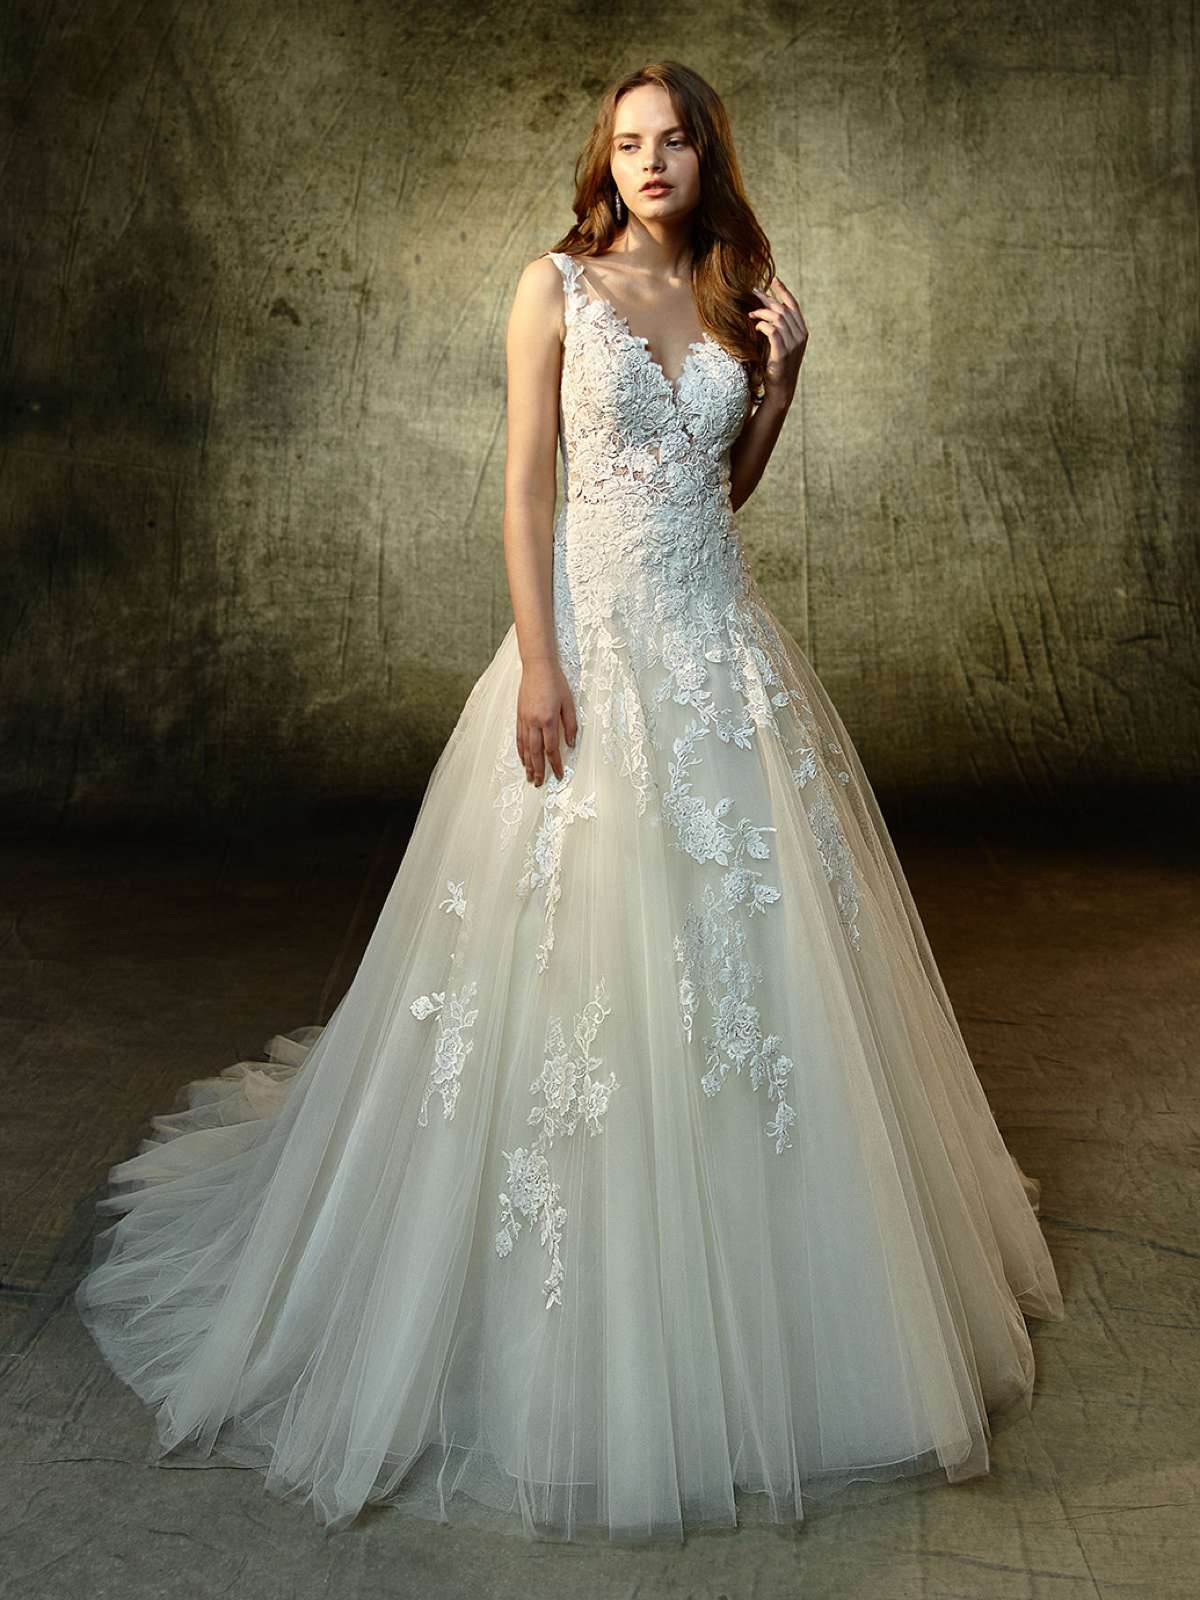 b2158aef8a Lourdes by Blue by Enzoani - Find Your Dream Dress